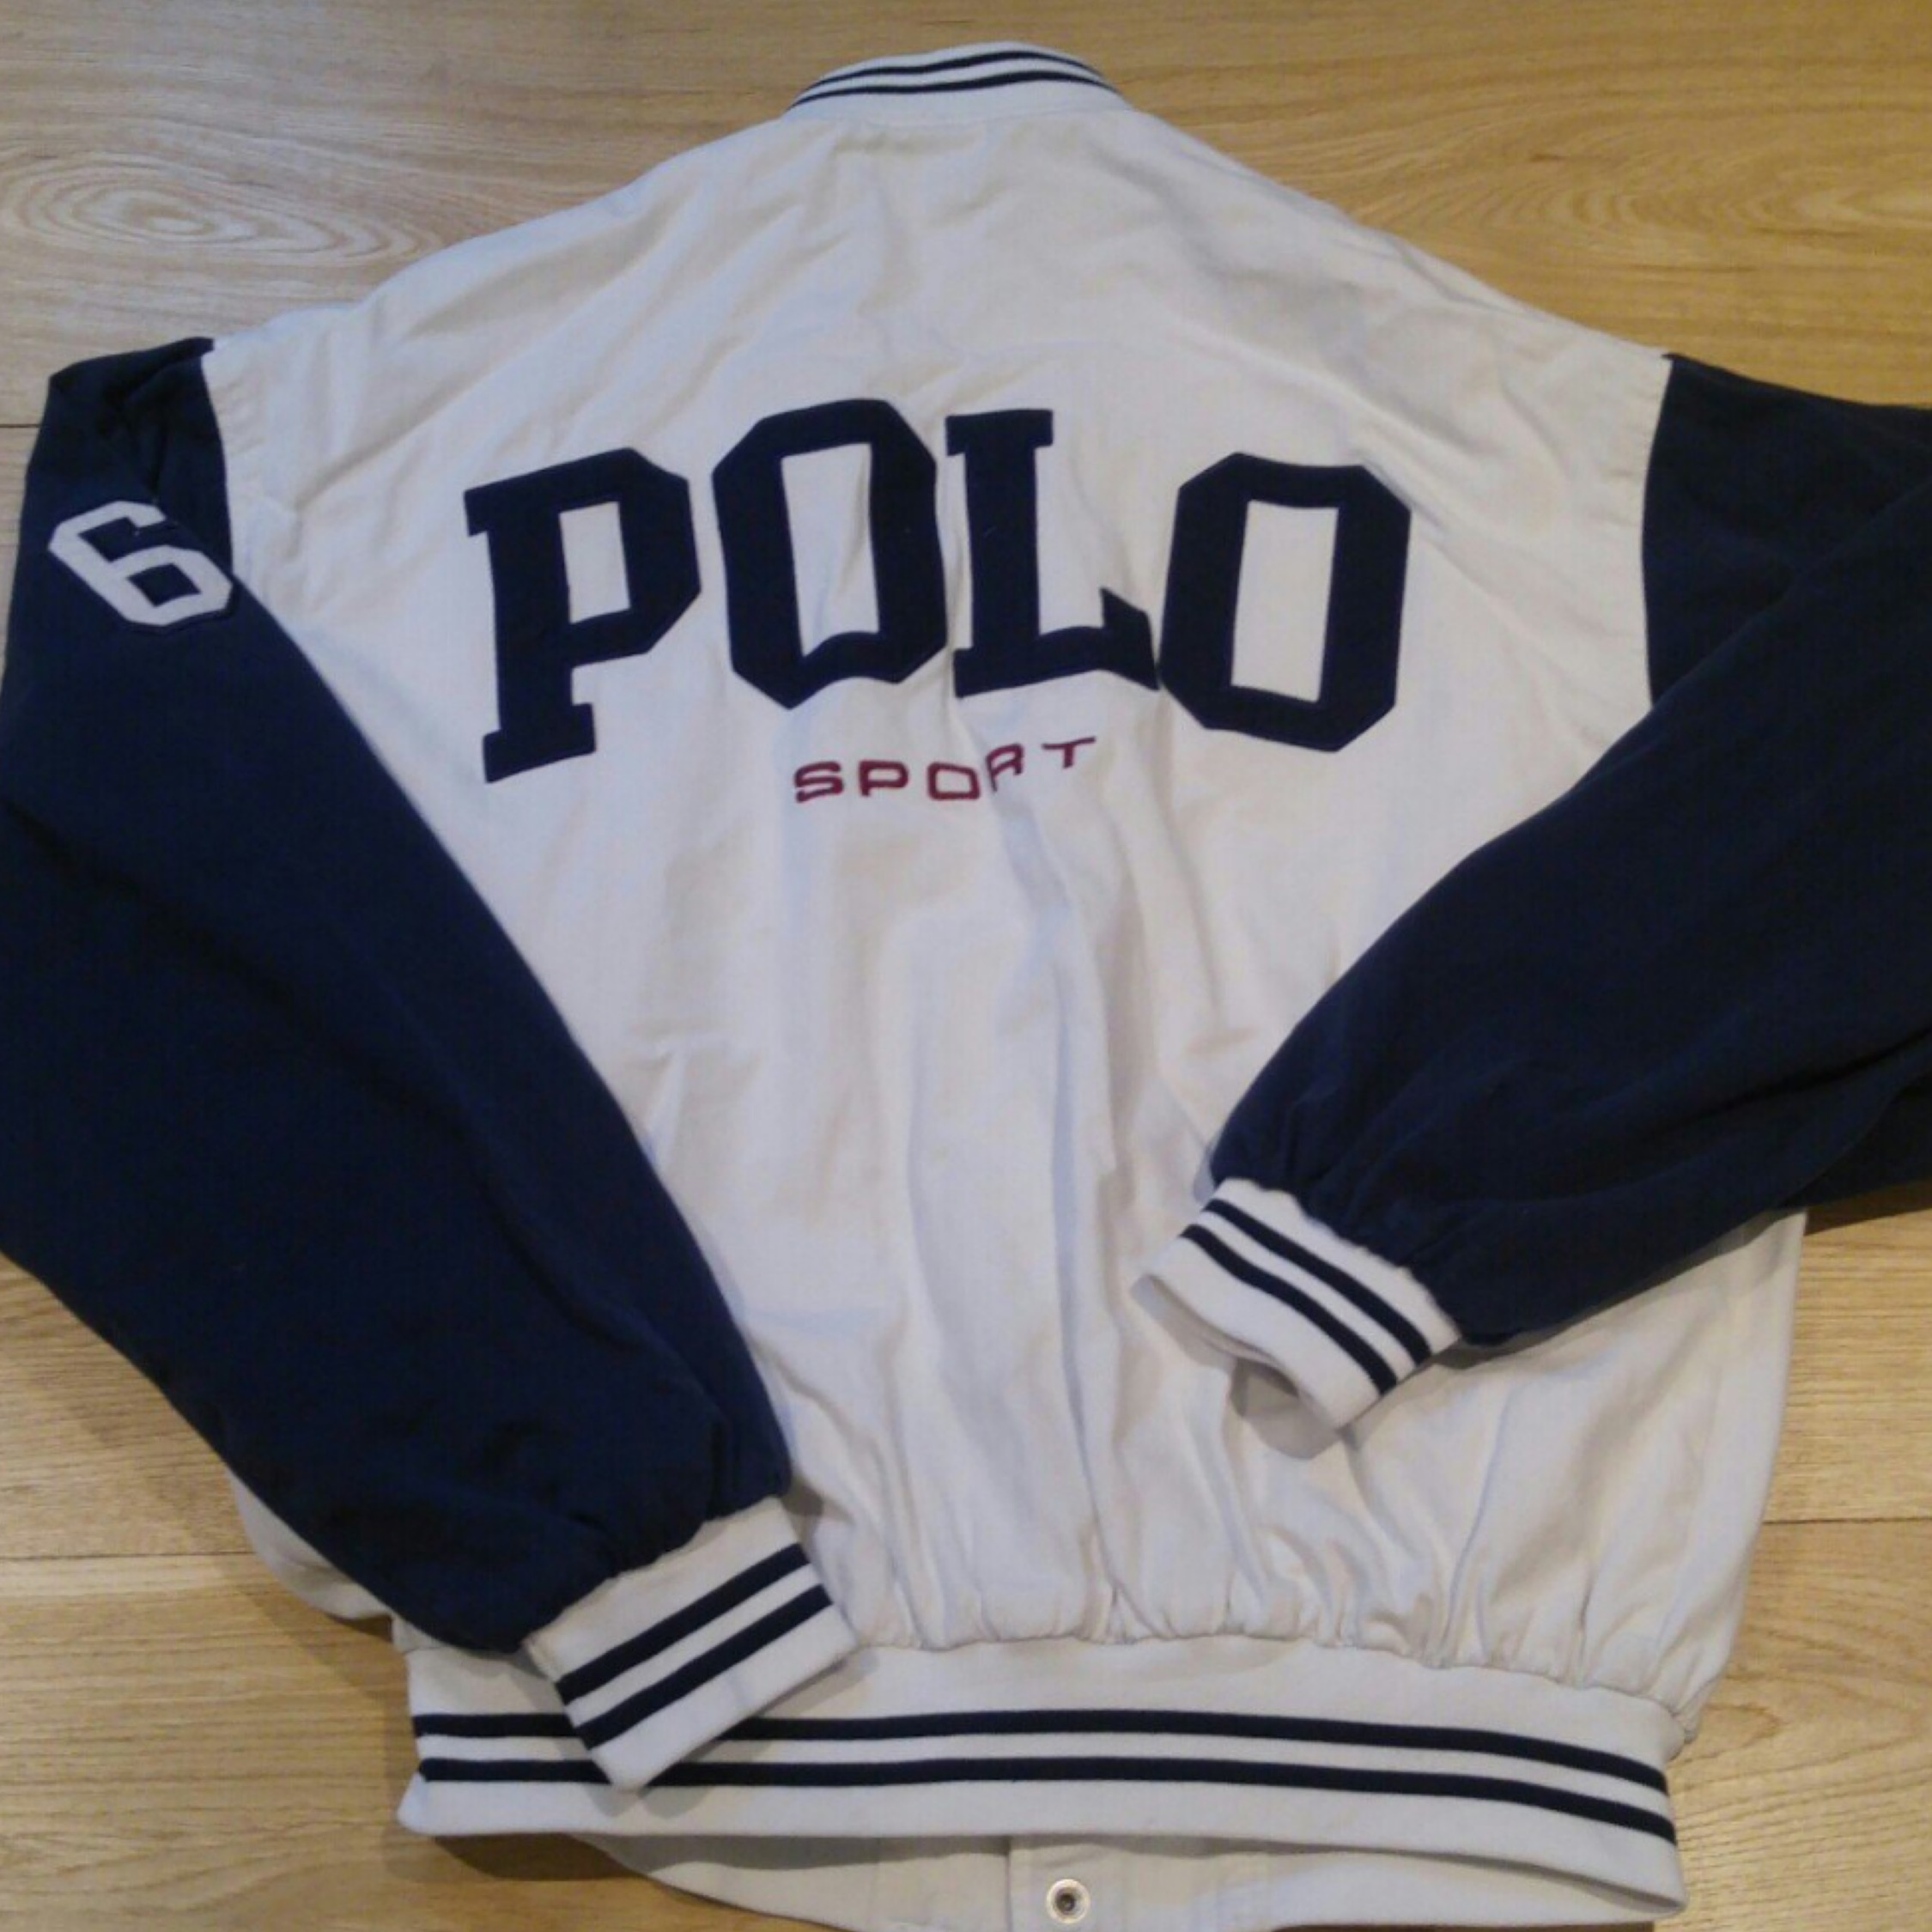 Ralph Polo Police Jacket Sport Badge Lauren fgYyb67